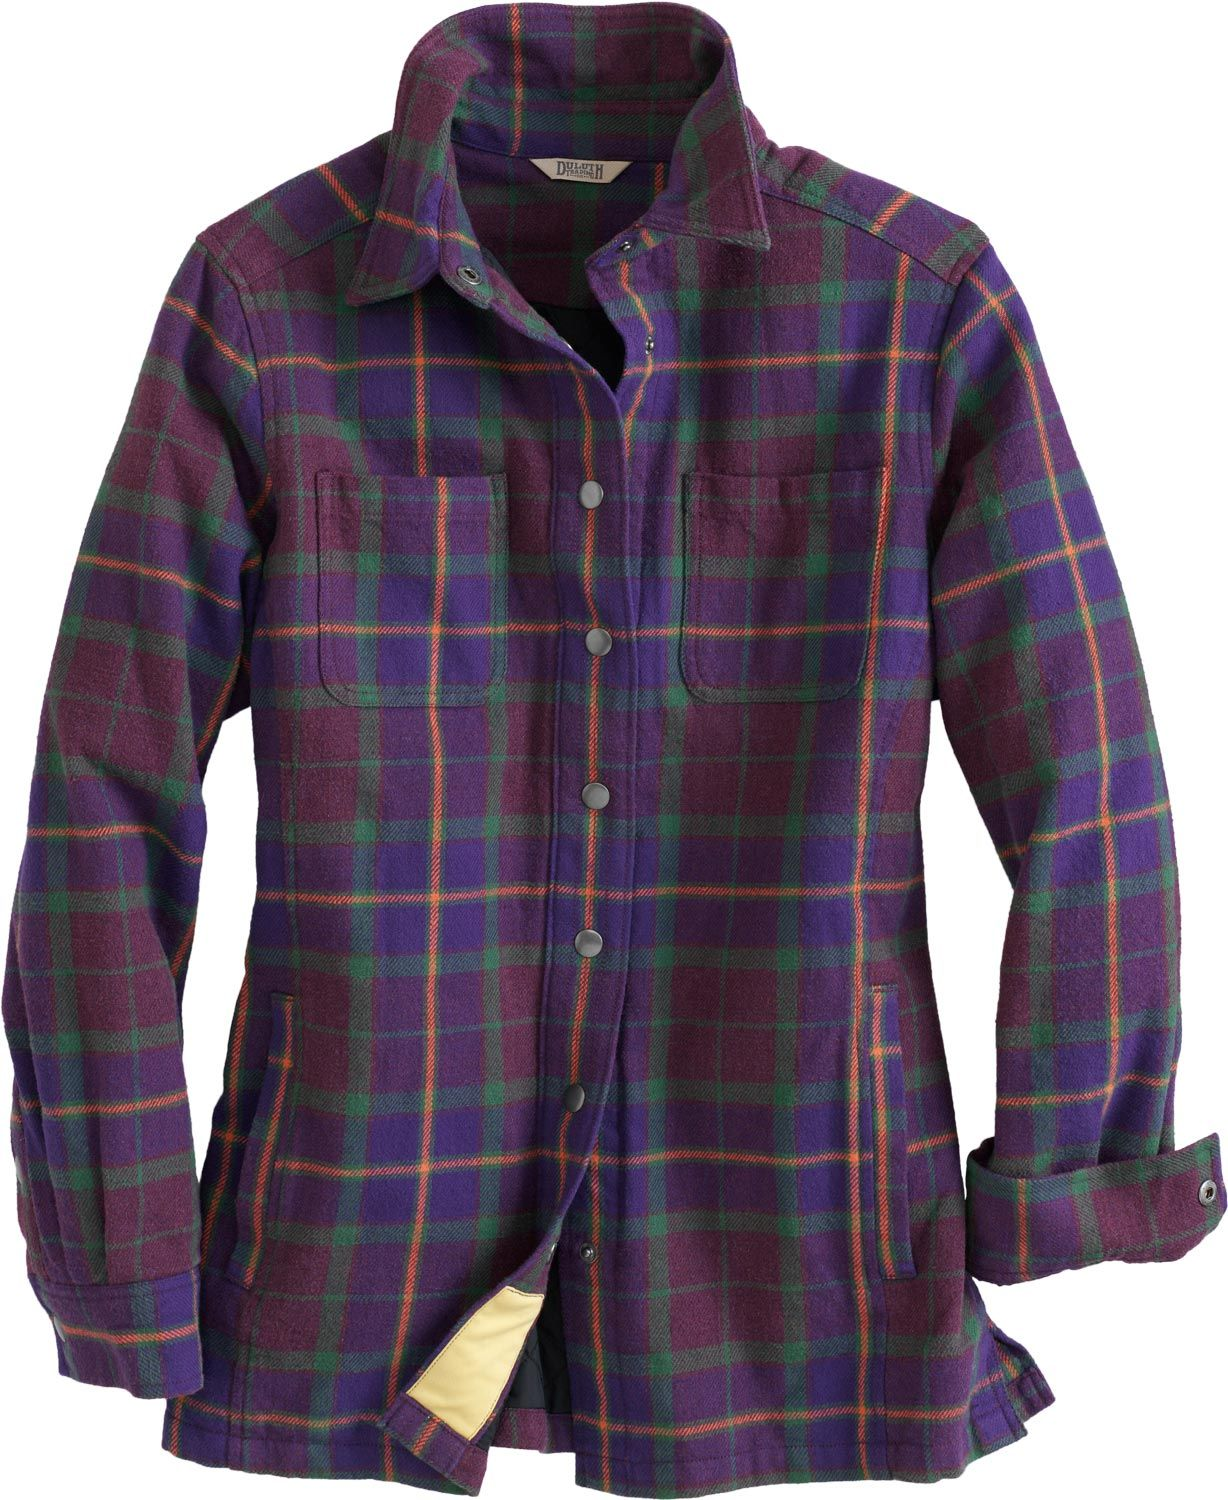 Quilted flannel shirt jacket  The Flapjack Shirt Jac blends fuzzysoft flannel with a cozy quilted